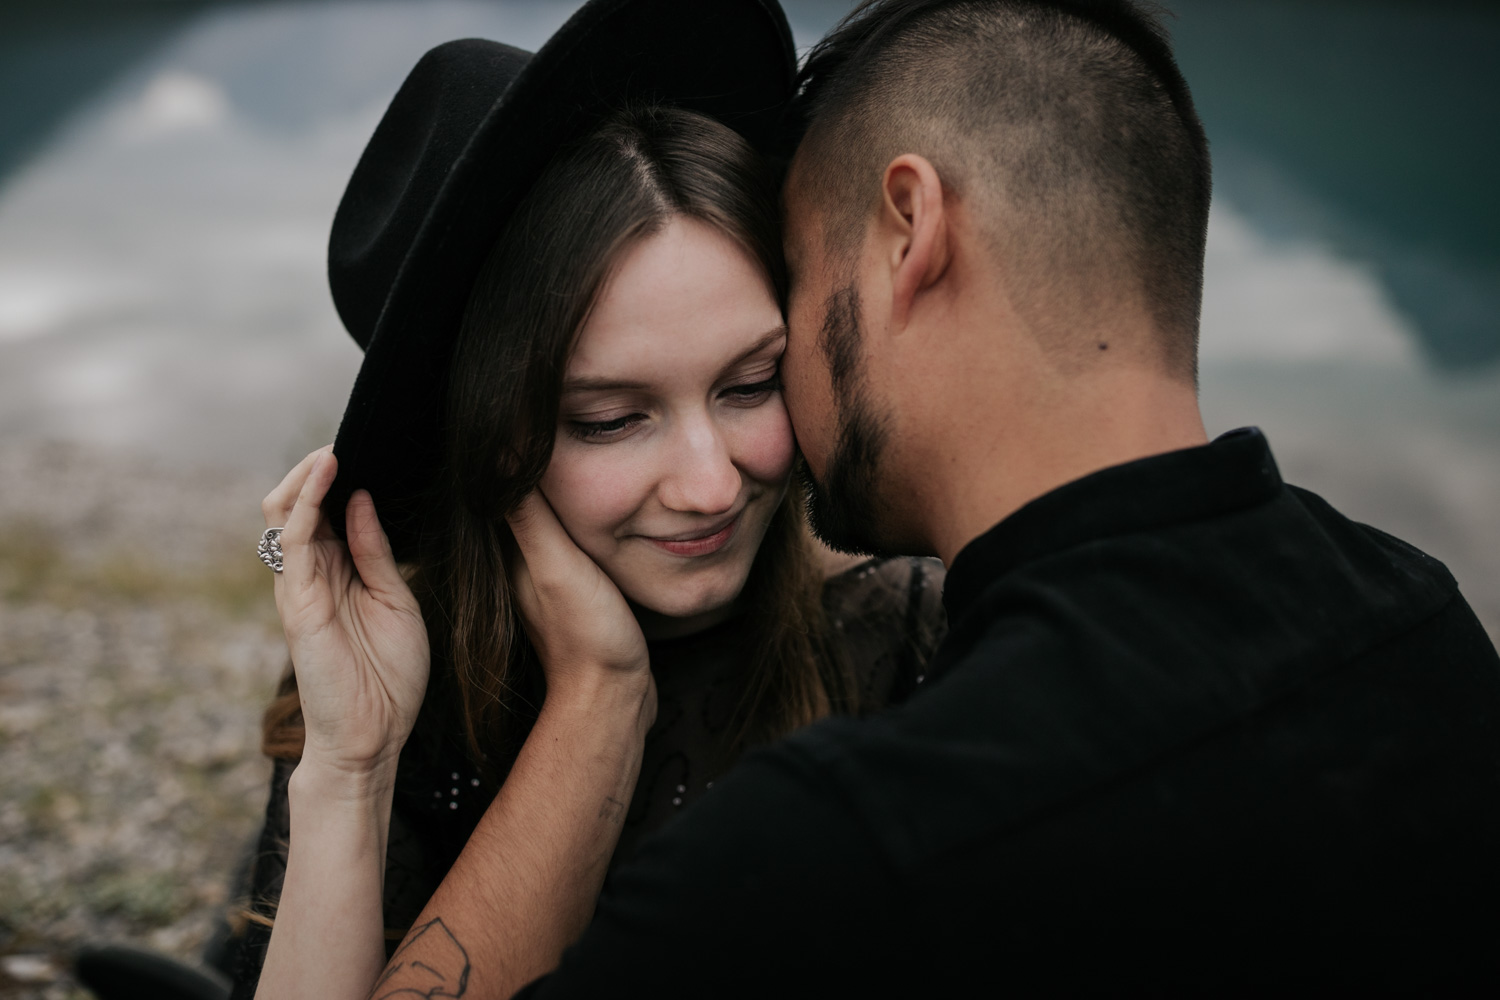 Guy Kisses Girl Wearing Black Felt Hat Vancouver Engagement Photo Shoot